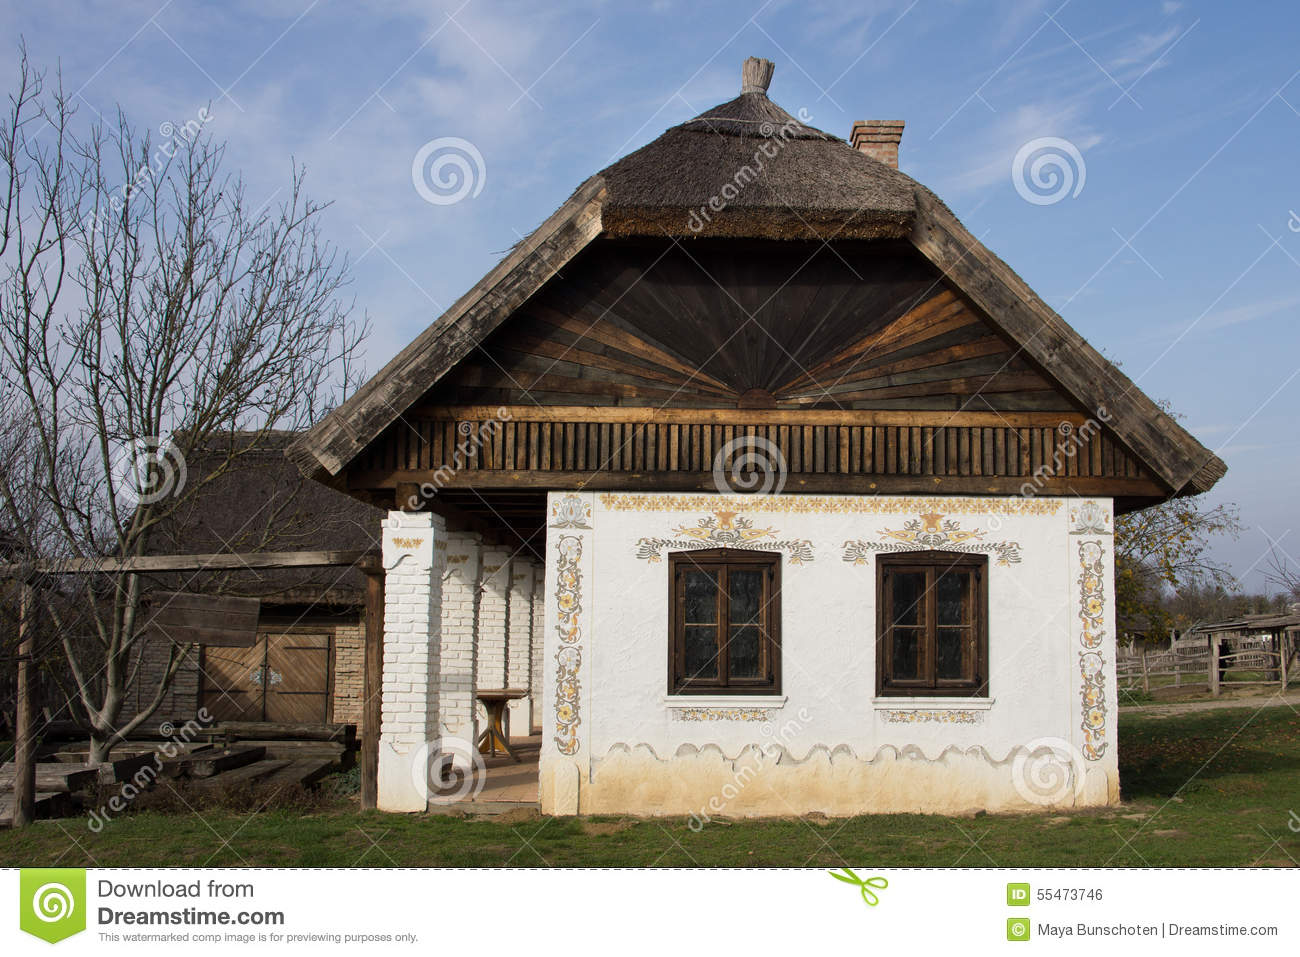 Traditionelles ungarisches haus stockfoto image 55473746 for Haus dekorationen